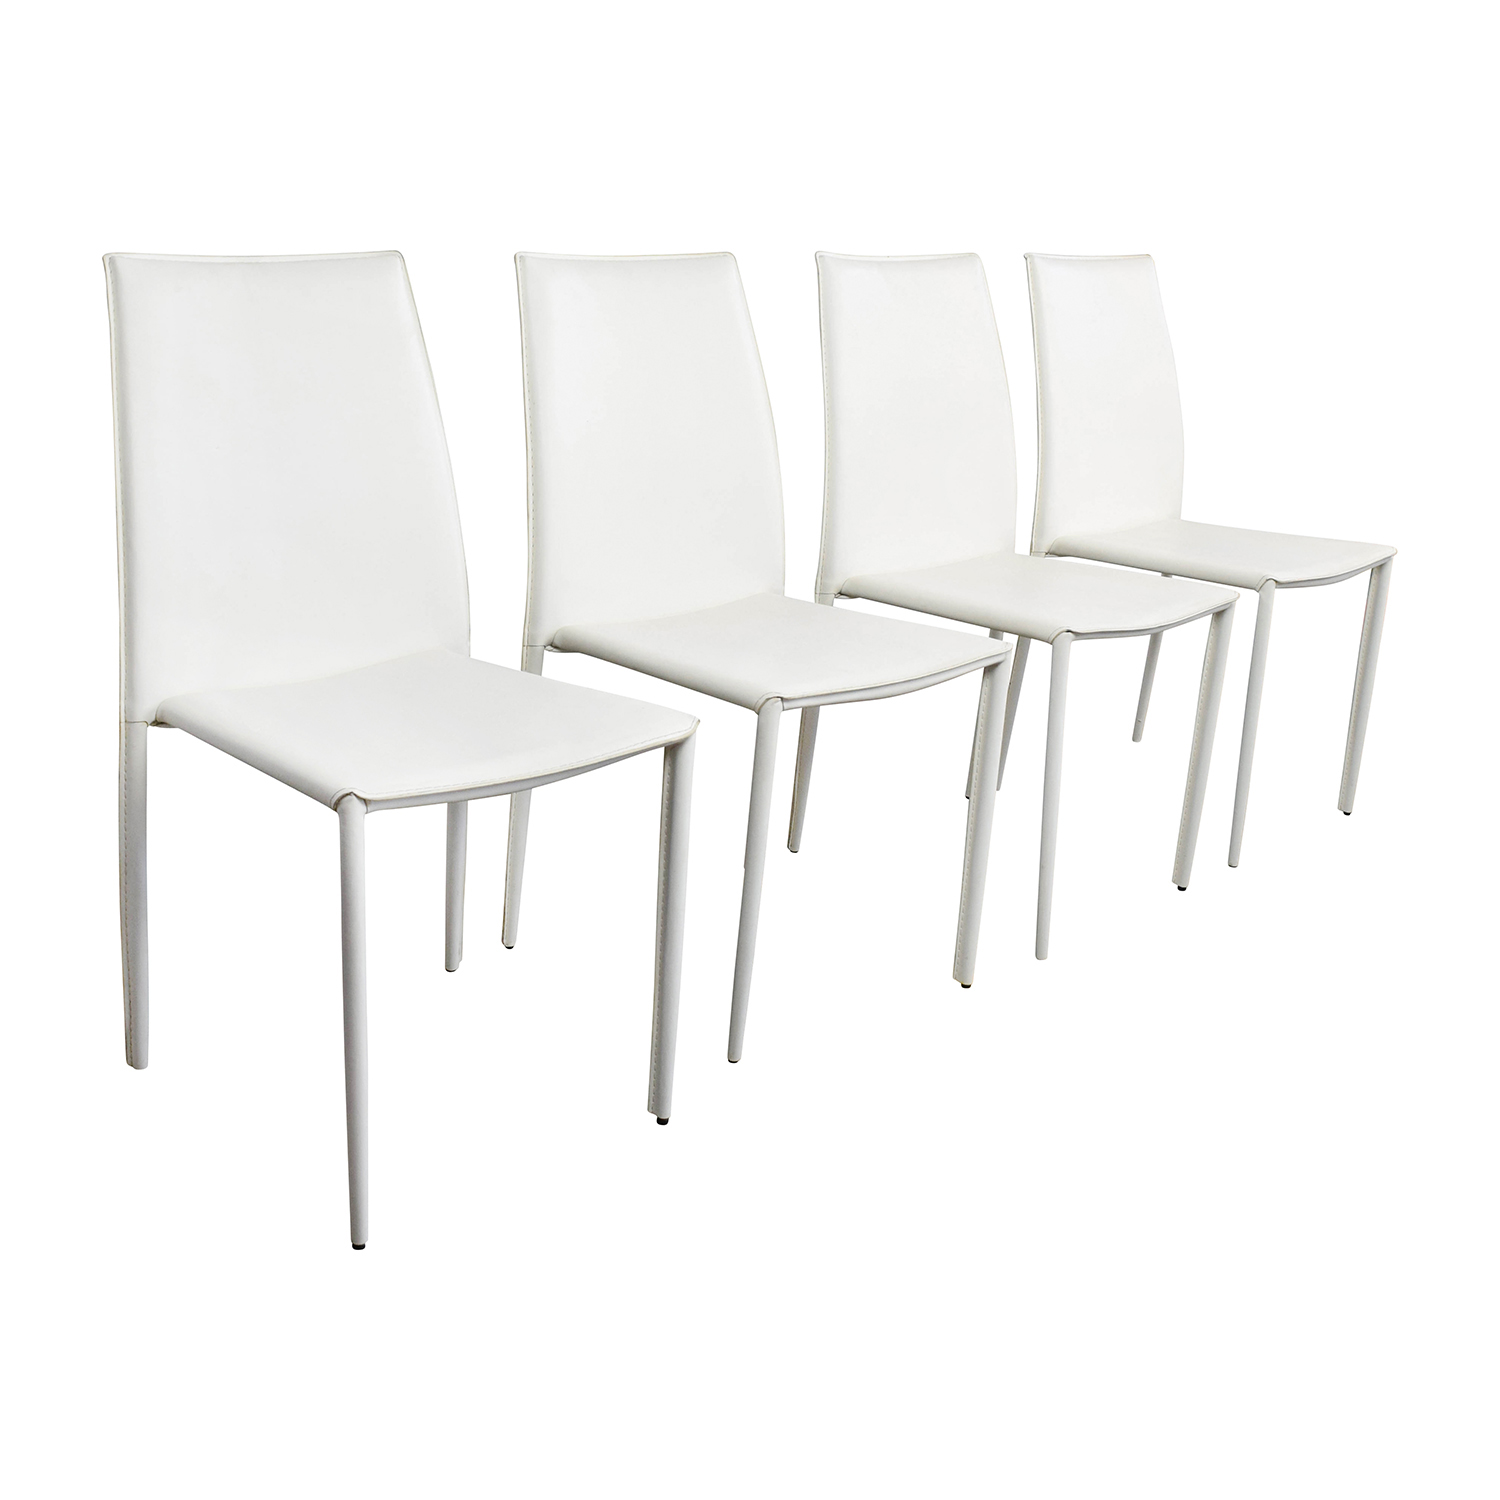 Sensational 77 Off Allmodern All Modern White Leather Dining Chairs Chairs Evergreenethics Interior Chair Design Evergreenethicsorg